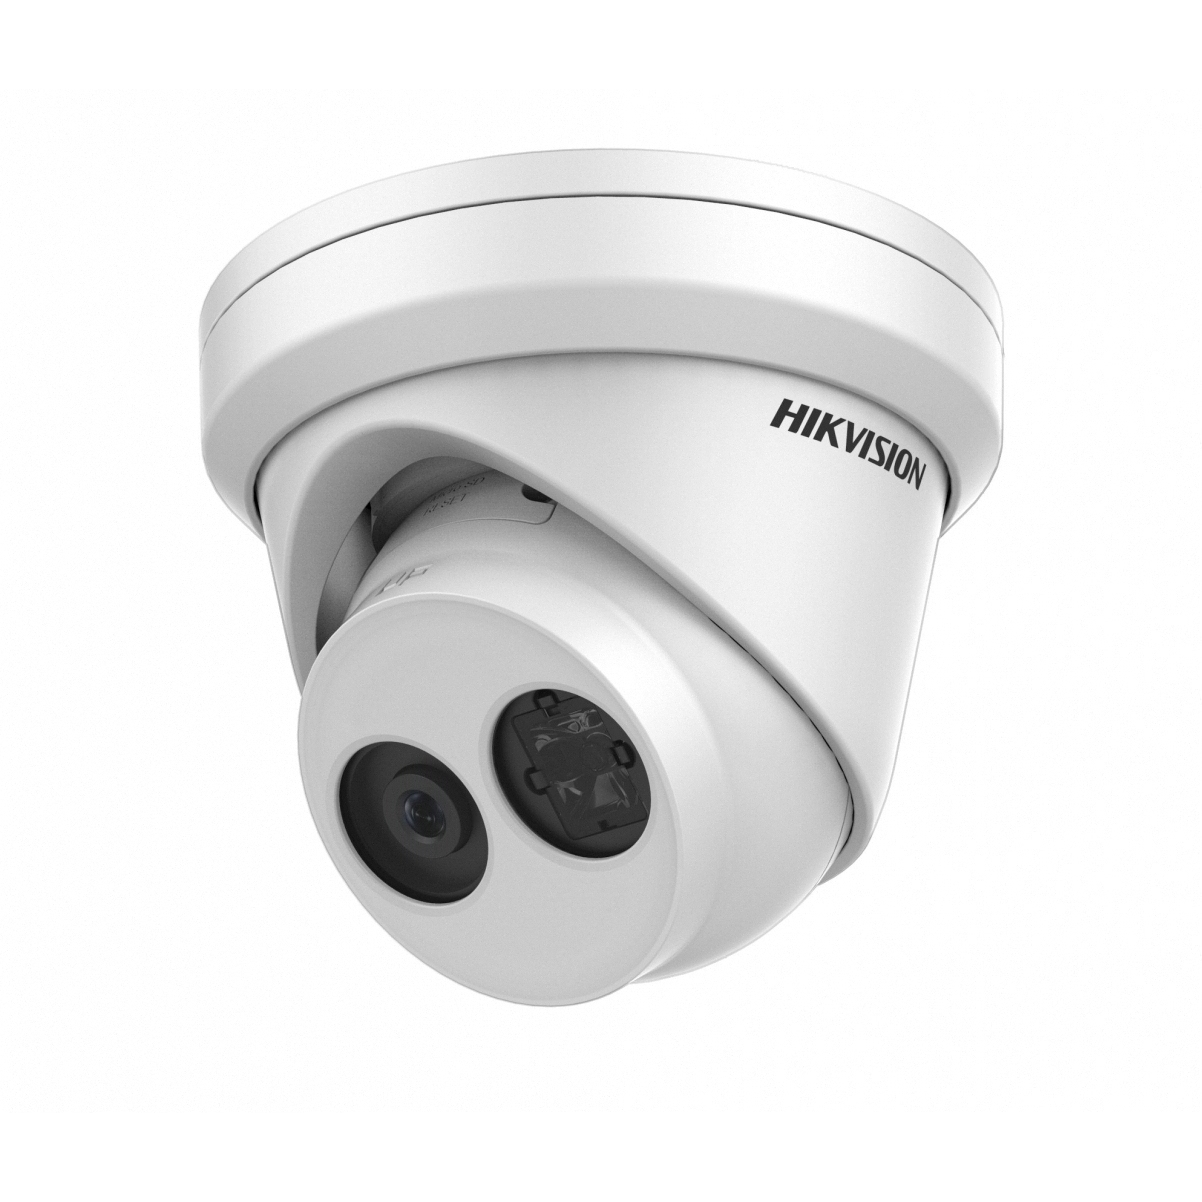 5MP 2.8mm IP Turret Camera with 30m IR